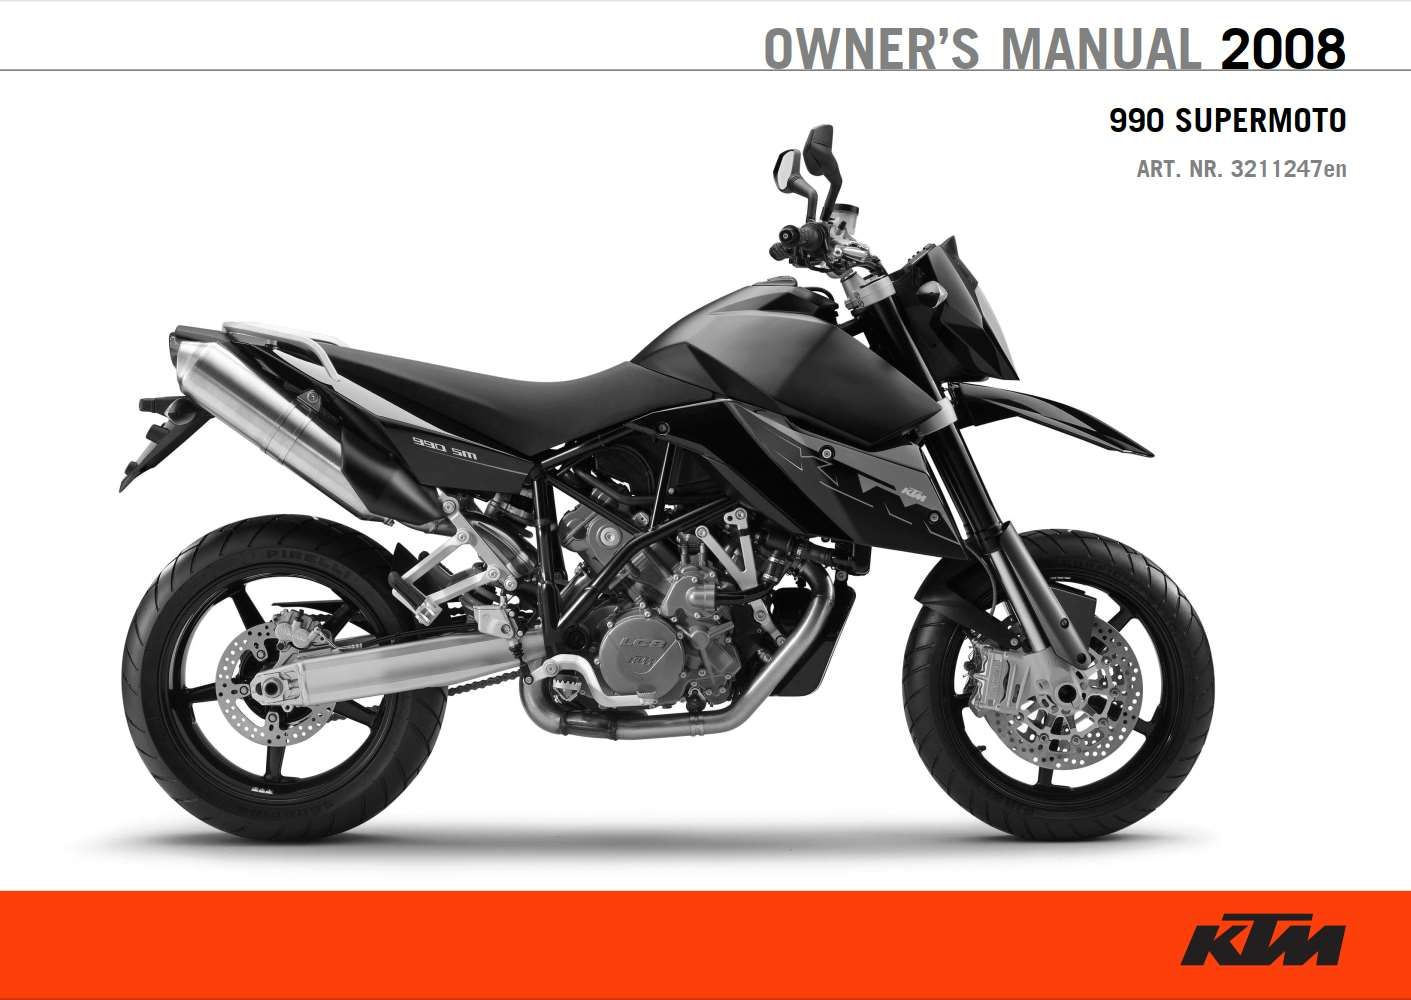 Ktm 990 Supermoto 2008 Owner S Manual Has Been Published On Procarmanuals Com Https Procarmanuals Com Ktm 990 Supermoto 2008 Own Supermoto Ktm Owners Manuals